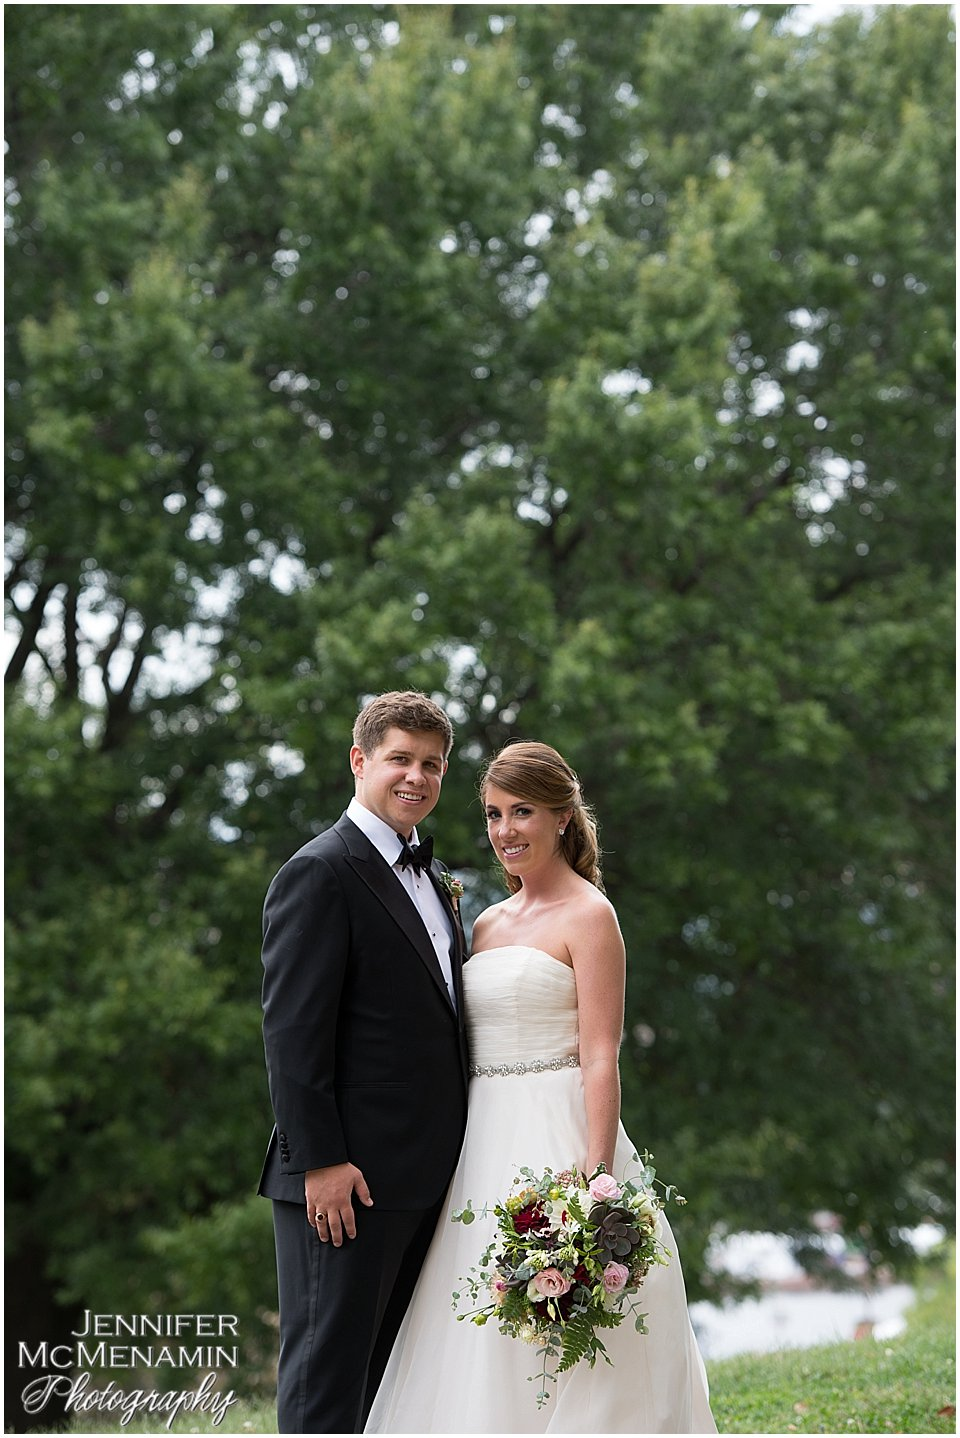 005-BergeronBarker_00222_Jennifer-McMenamin-Photography-AVAM-wedding-Baltimore-wedding-photographer